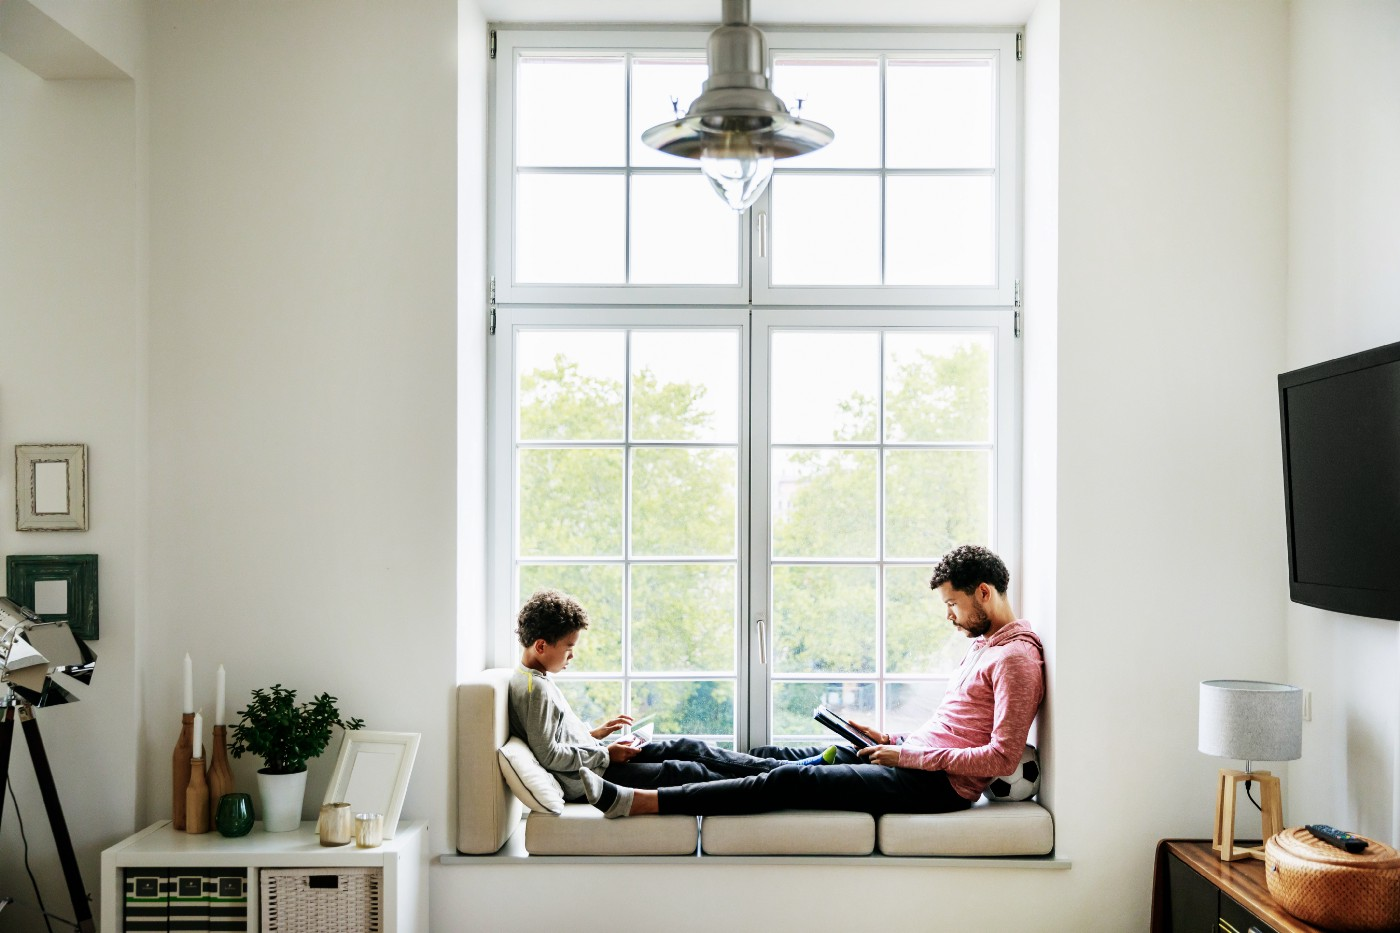 A father and son are relaxing by a large window at home, reading and playing games together.